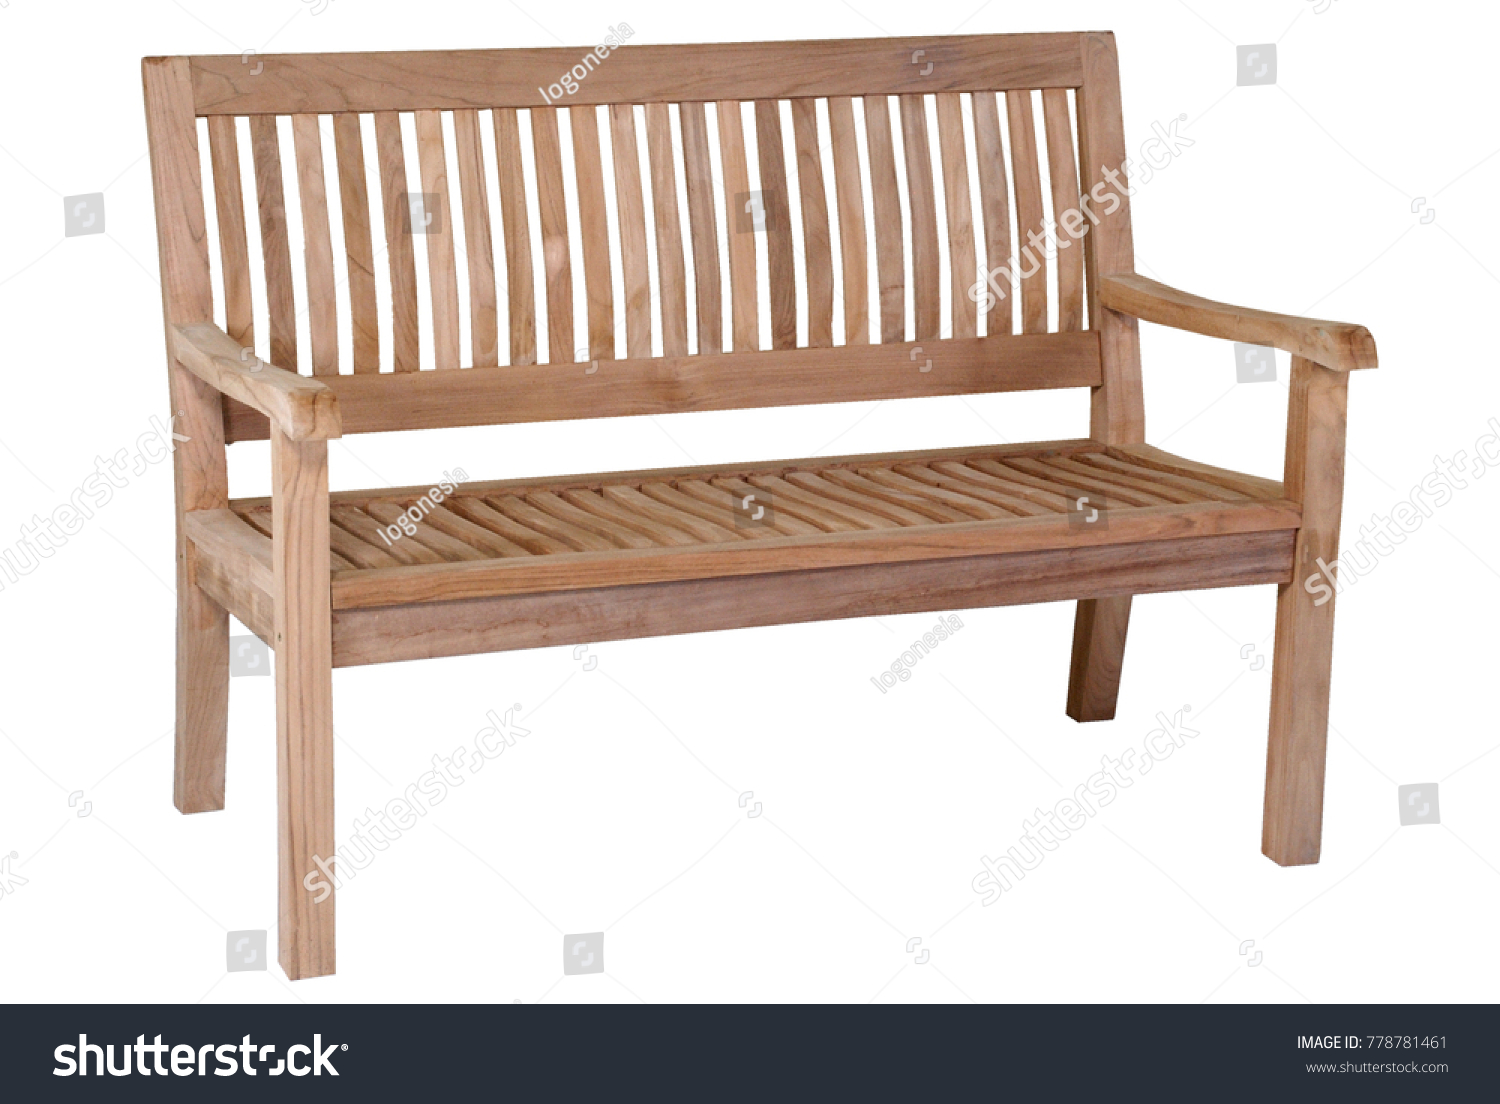 Teak Bench Garden Furniture Bench White Stock Photo (Edit Now ...